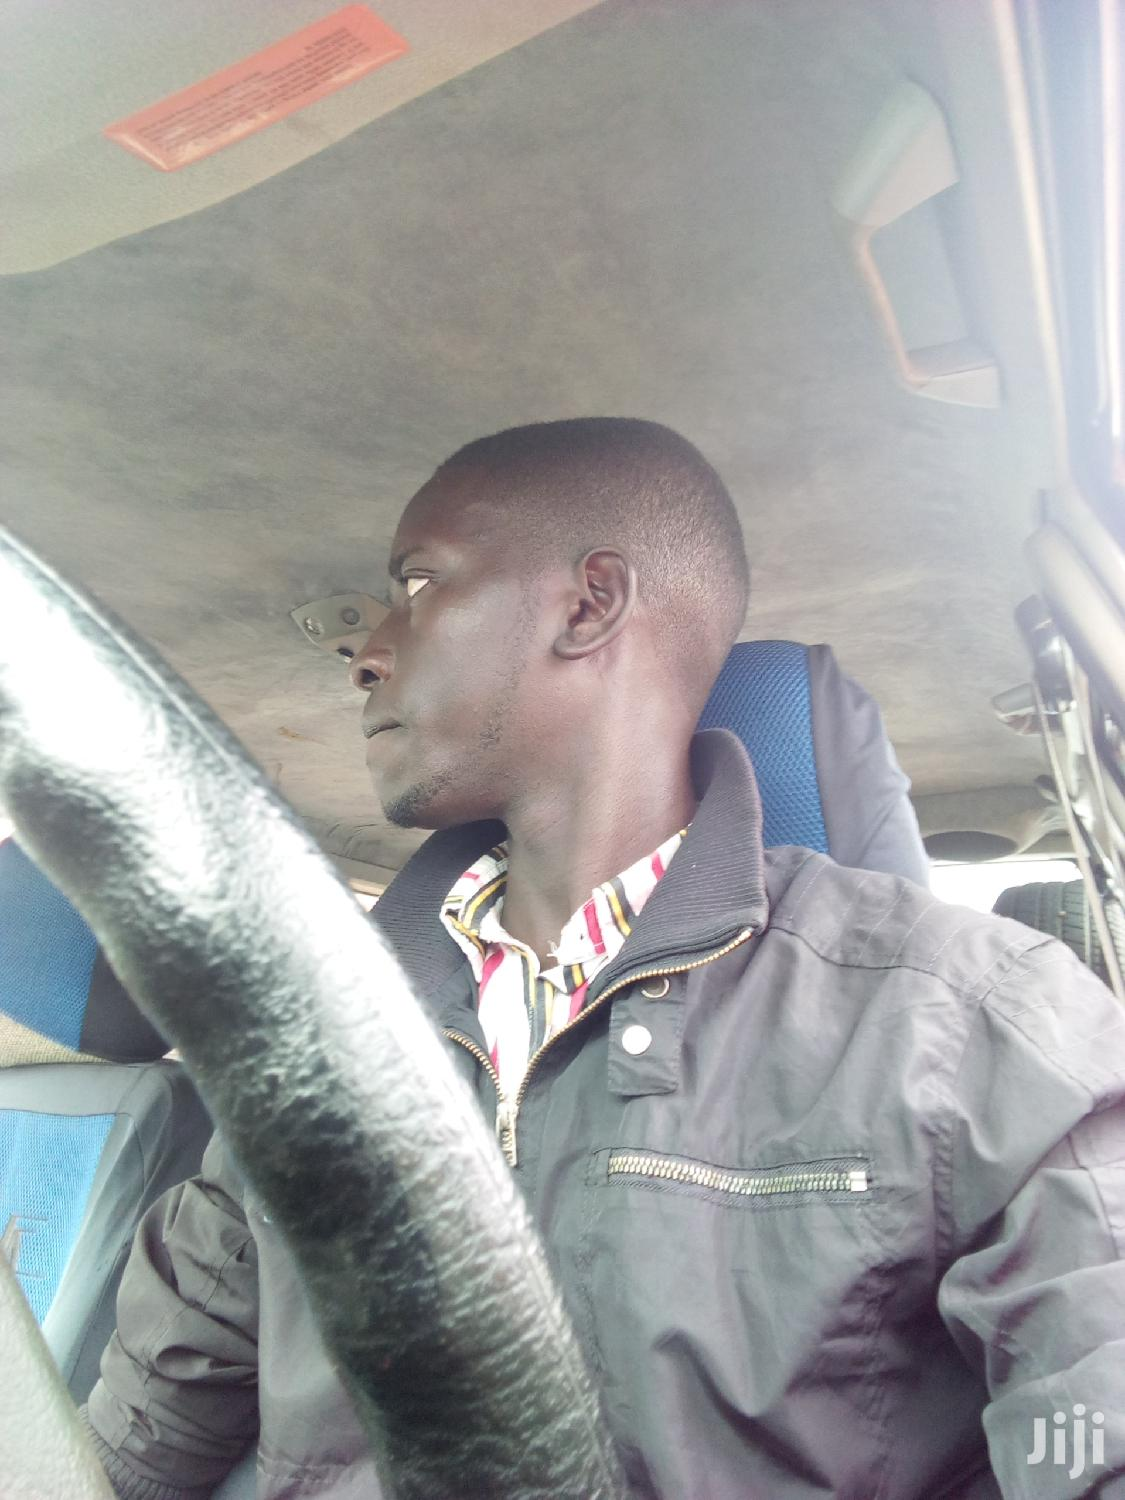 Professional Driver For Both Manual And Automatic Transmission Cars | Driver CVs for sale in Kampala, Central Region, Uganda